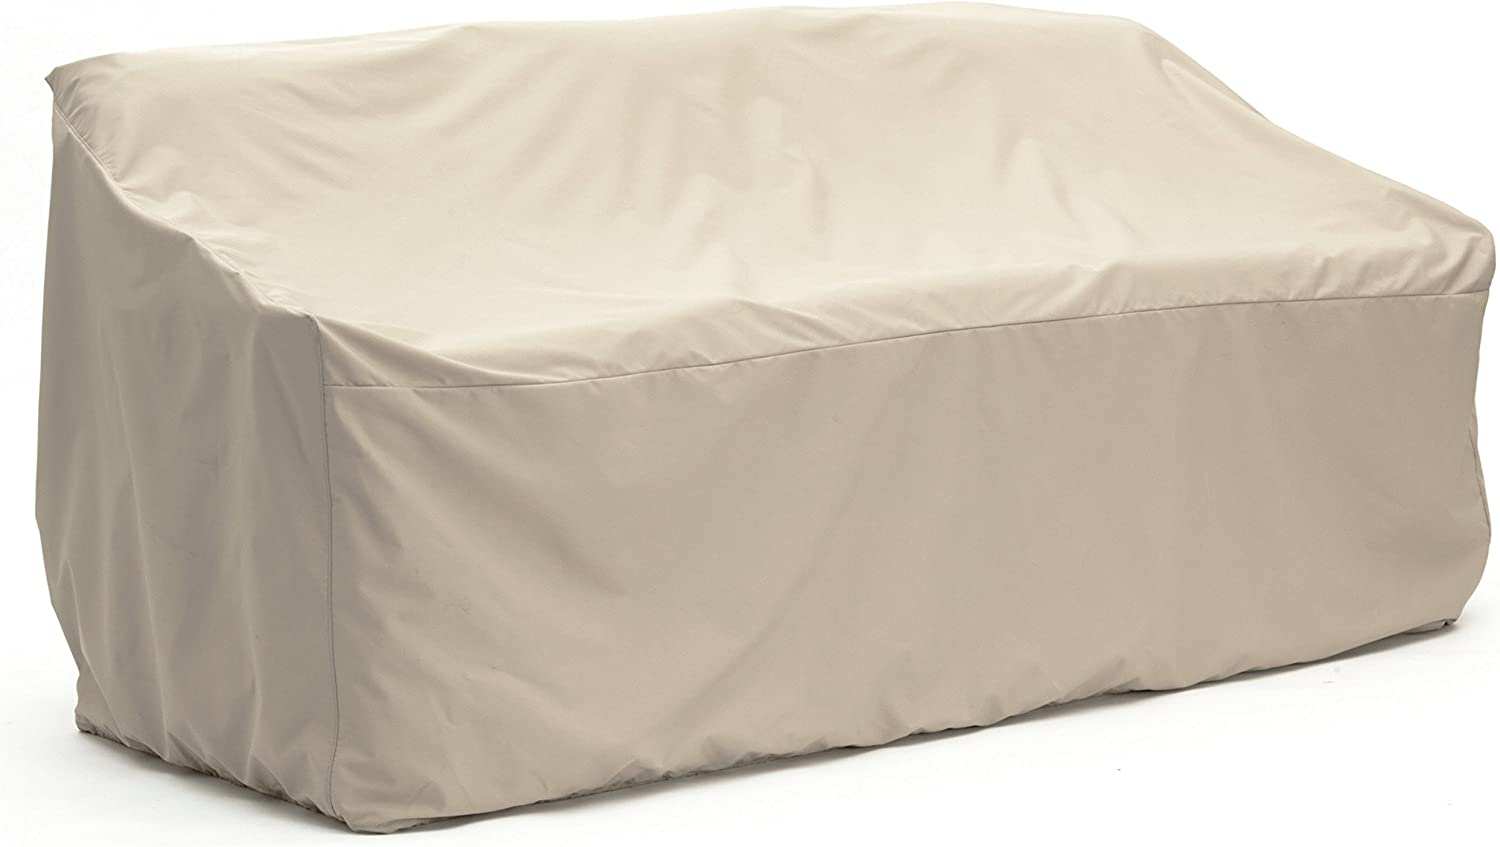 Covermates Outdoor Patio Sofa Cover Heavy Duty Material Water and Weather Resistant Patio Furniture Covers – Khaki